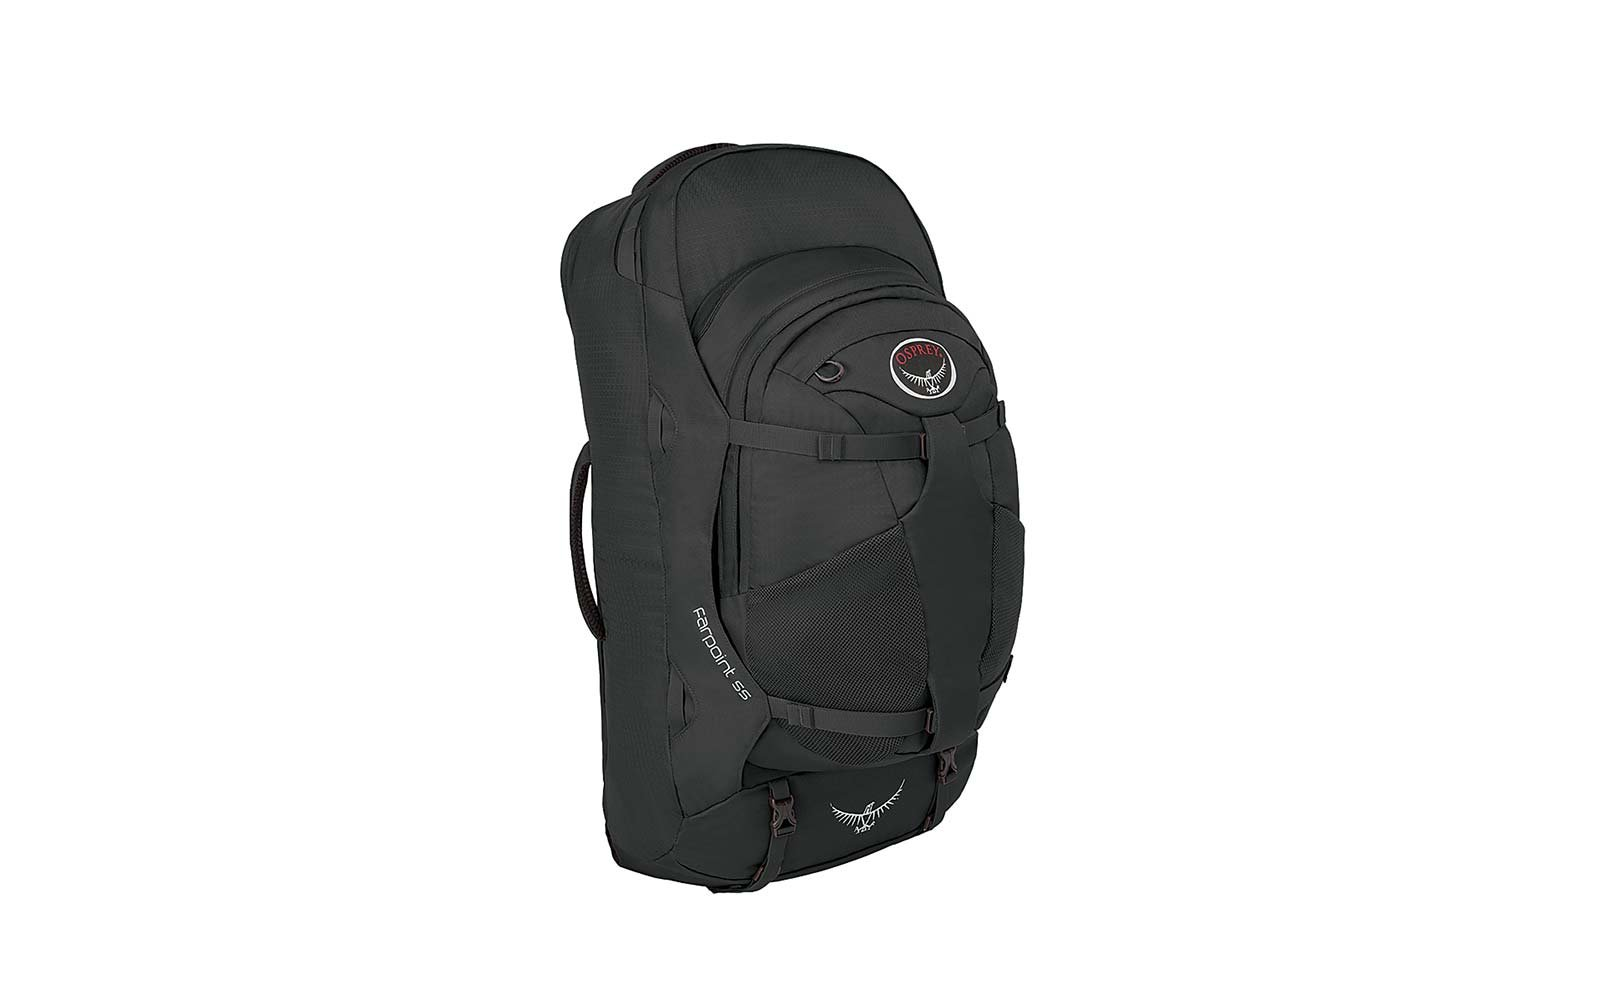 osprey backpack travel bag